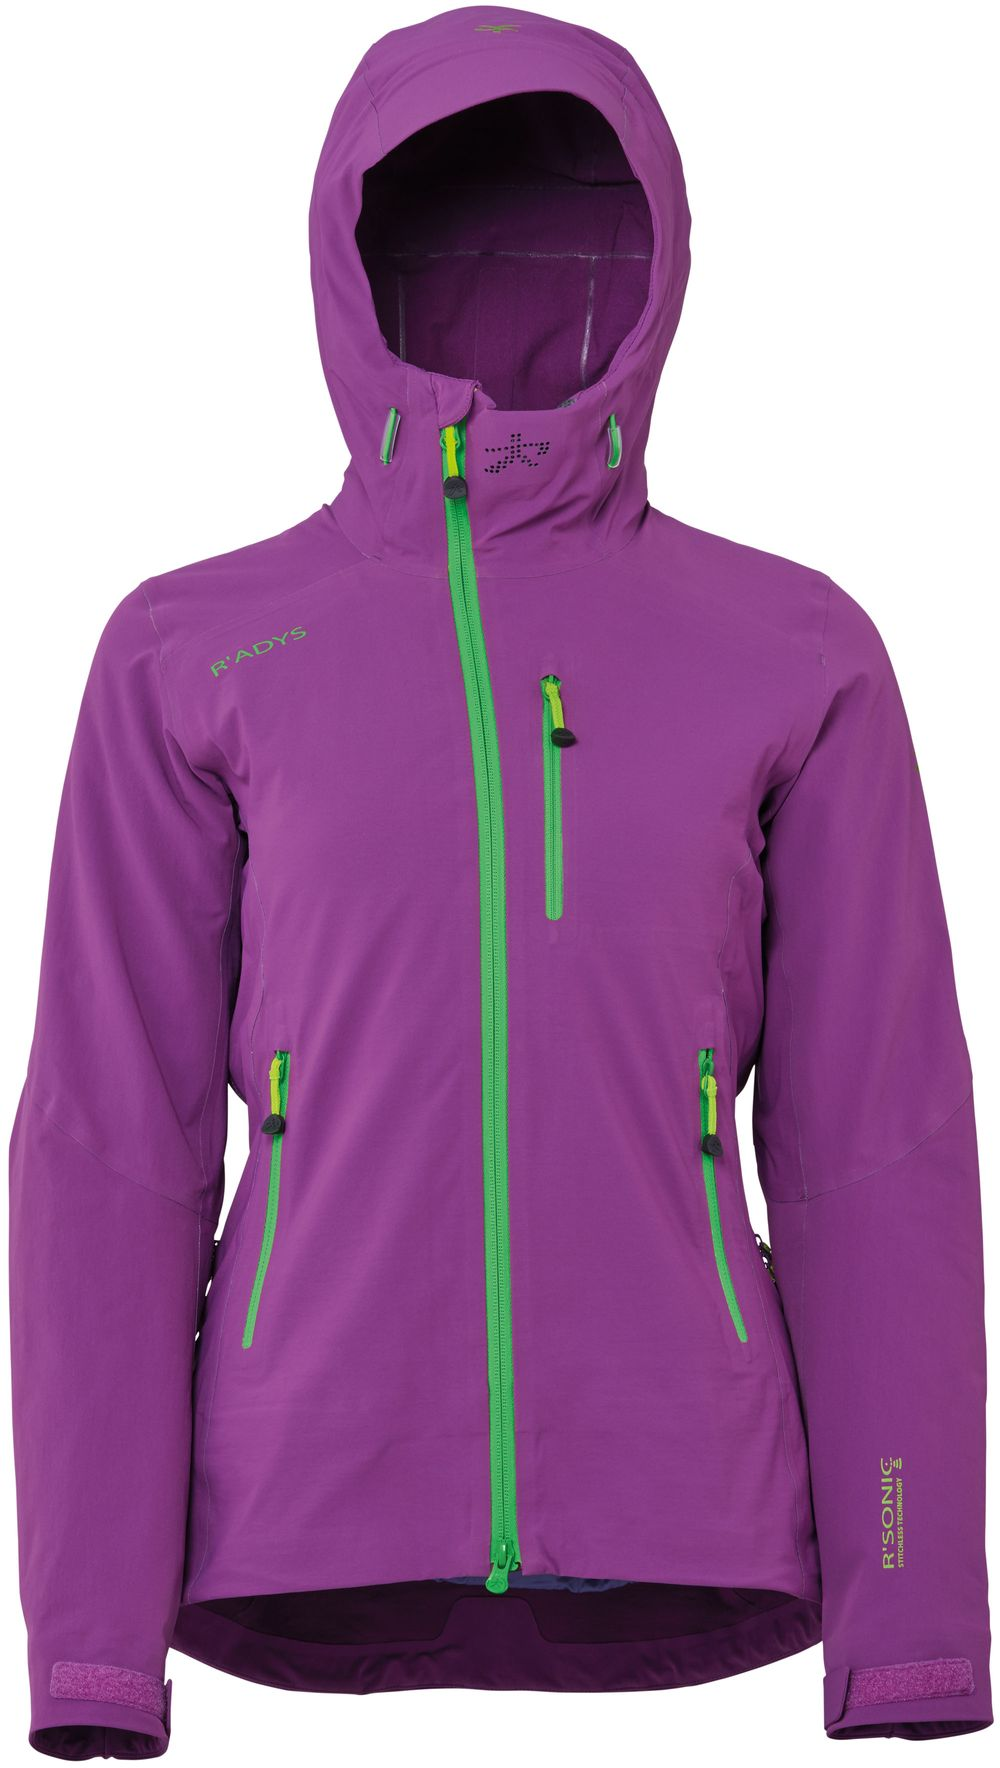 Radys R3 Light Softshell Jacket